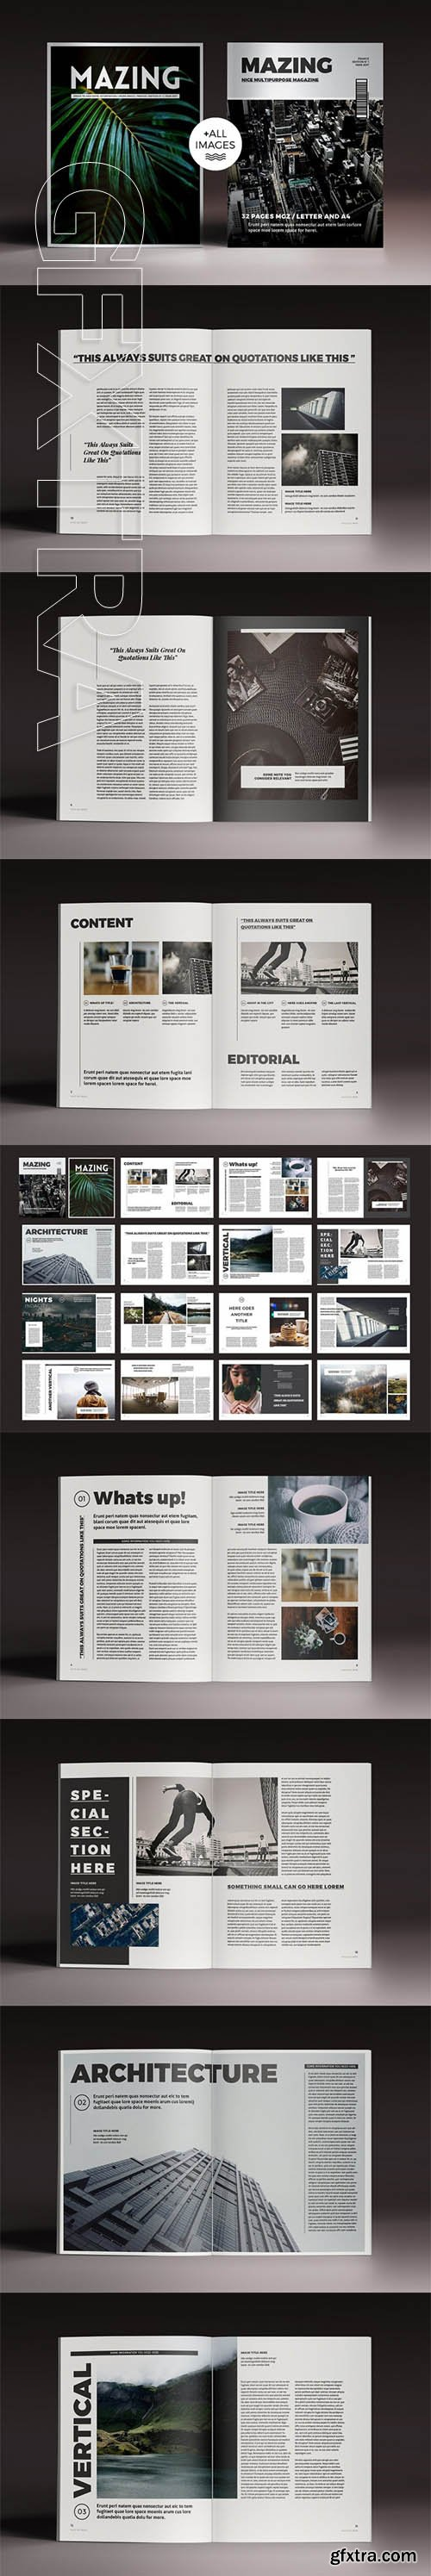 Mazing Magazine Indesign Template